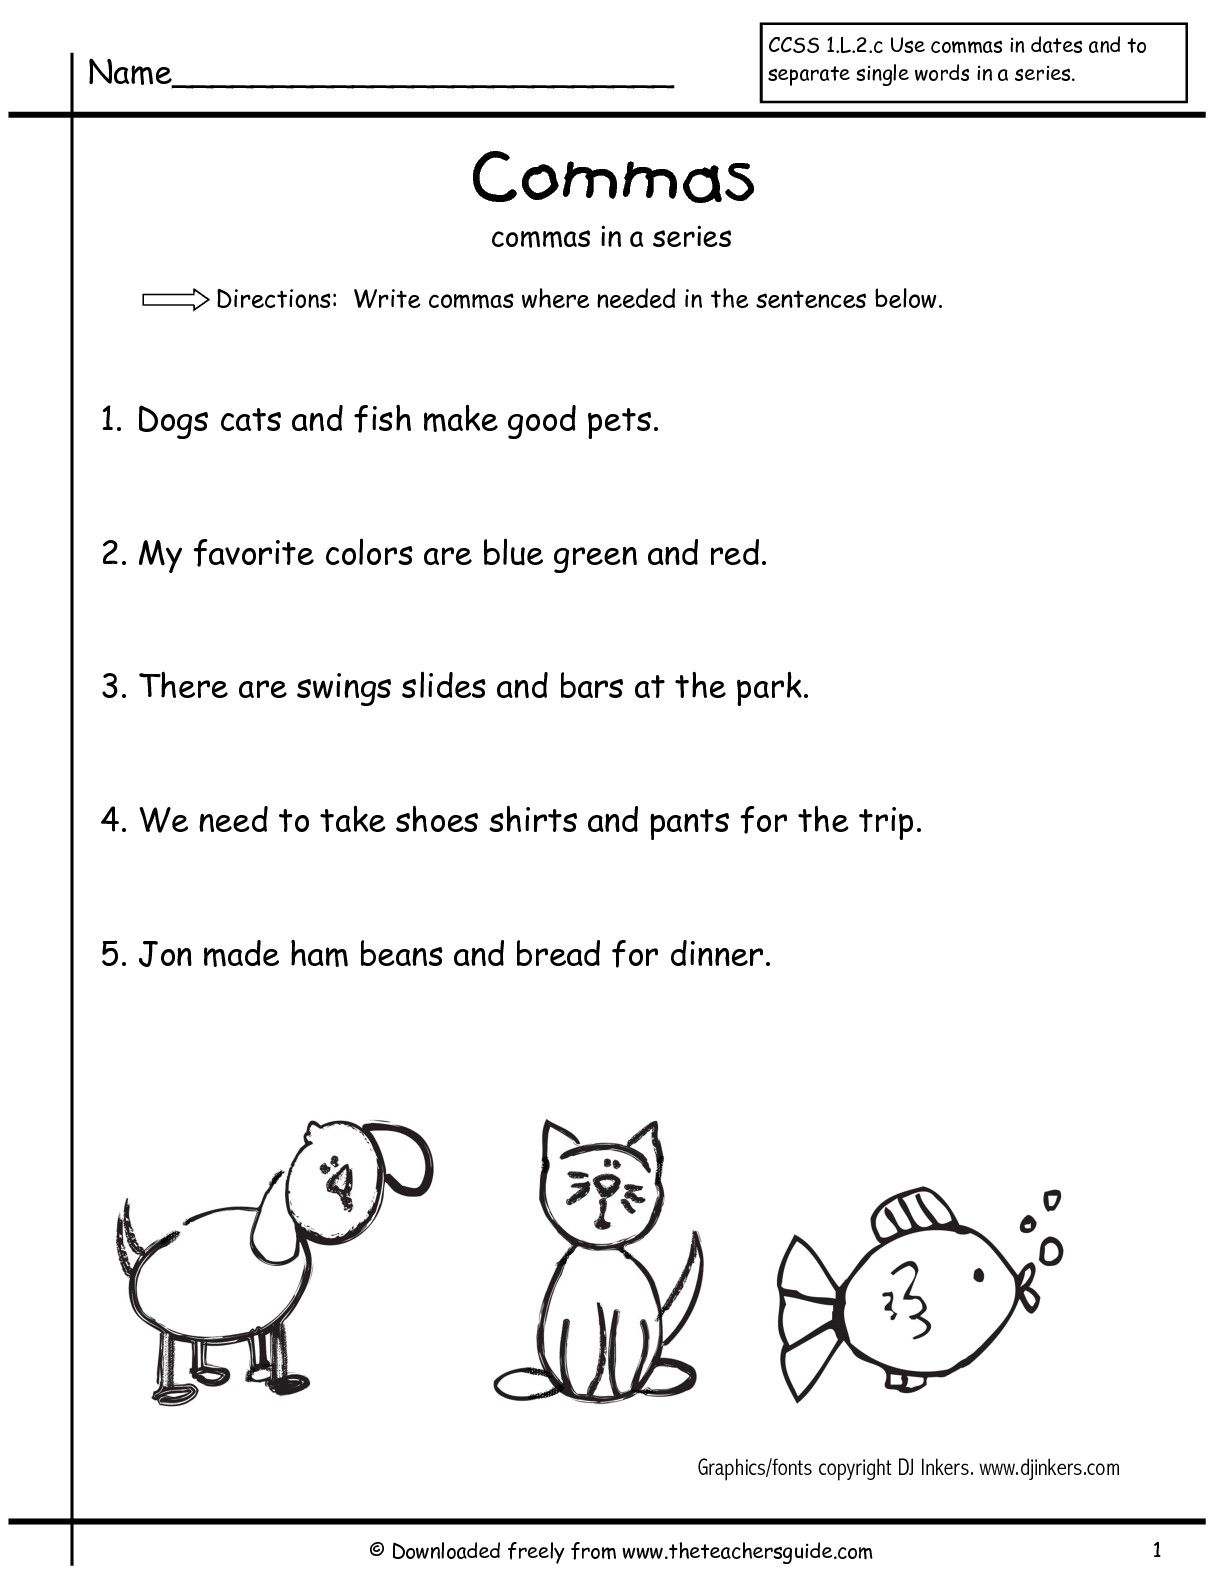 worksheet Comma Usage Worksheet grammar worksheets commas in a series first grade free comma worksheets